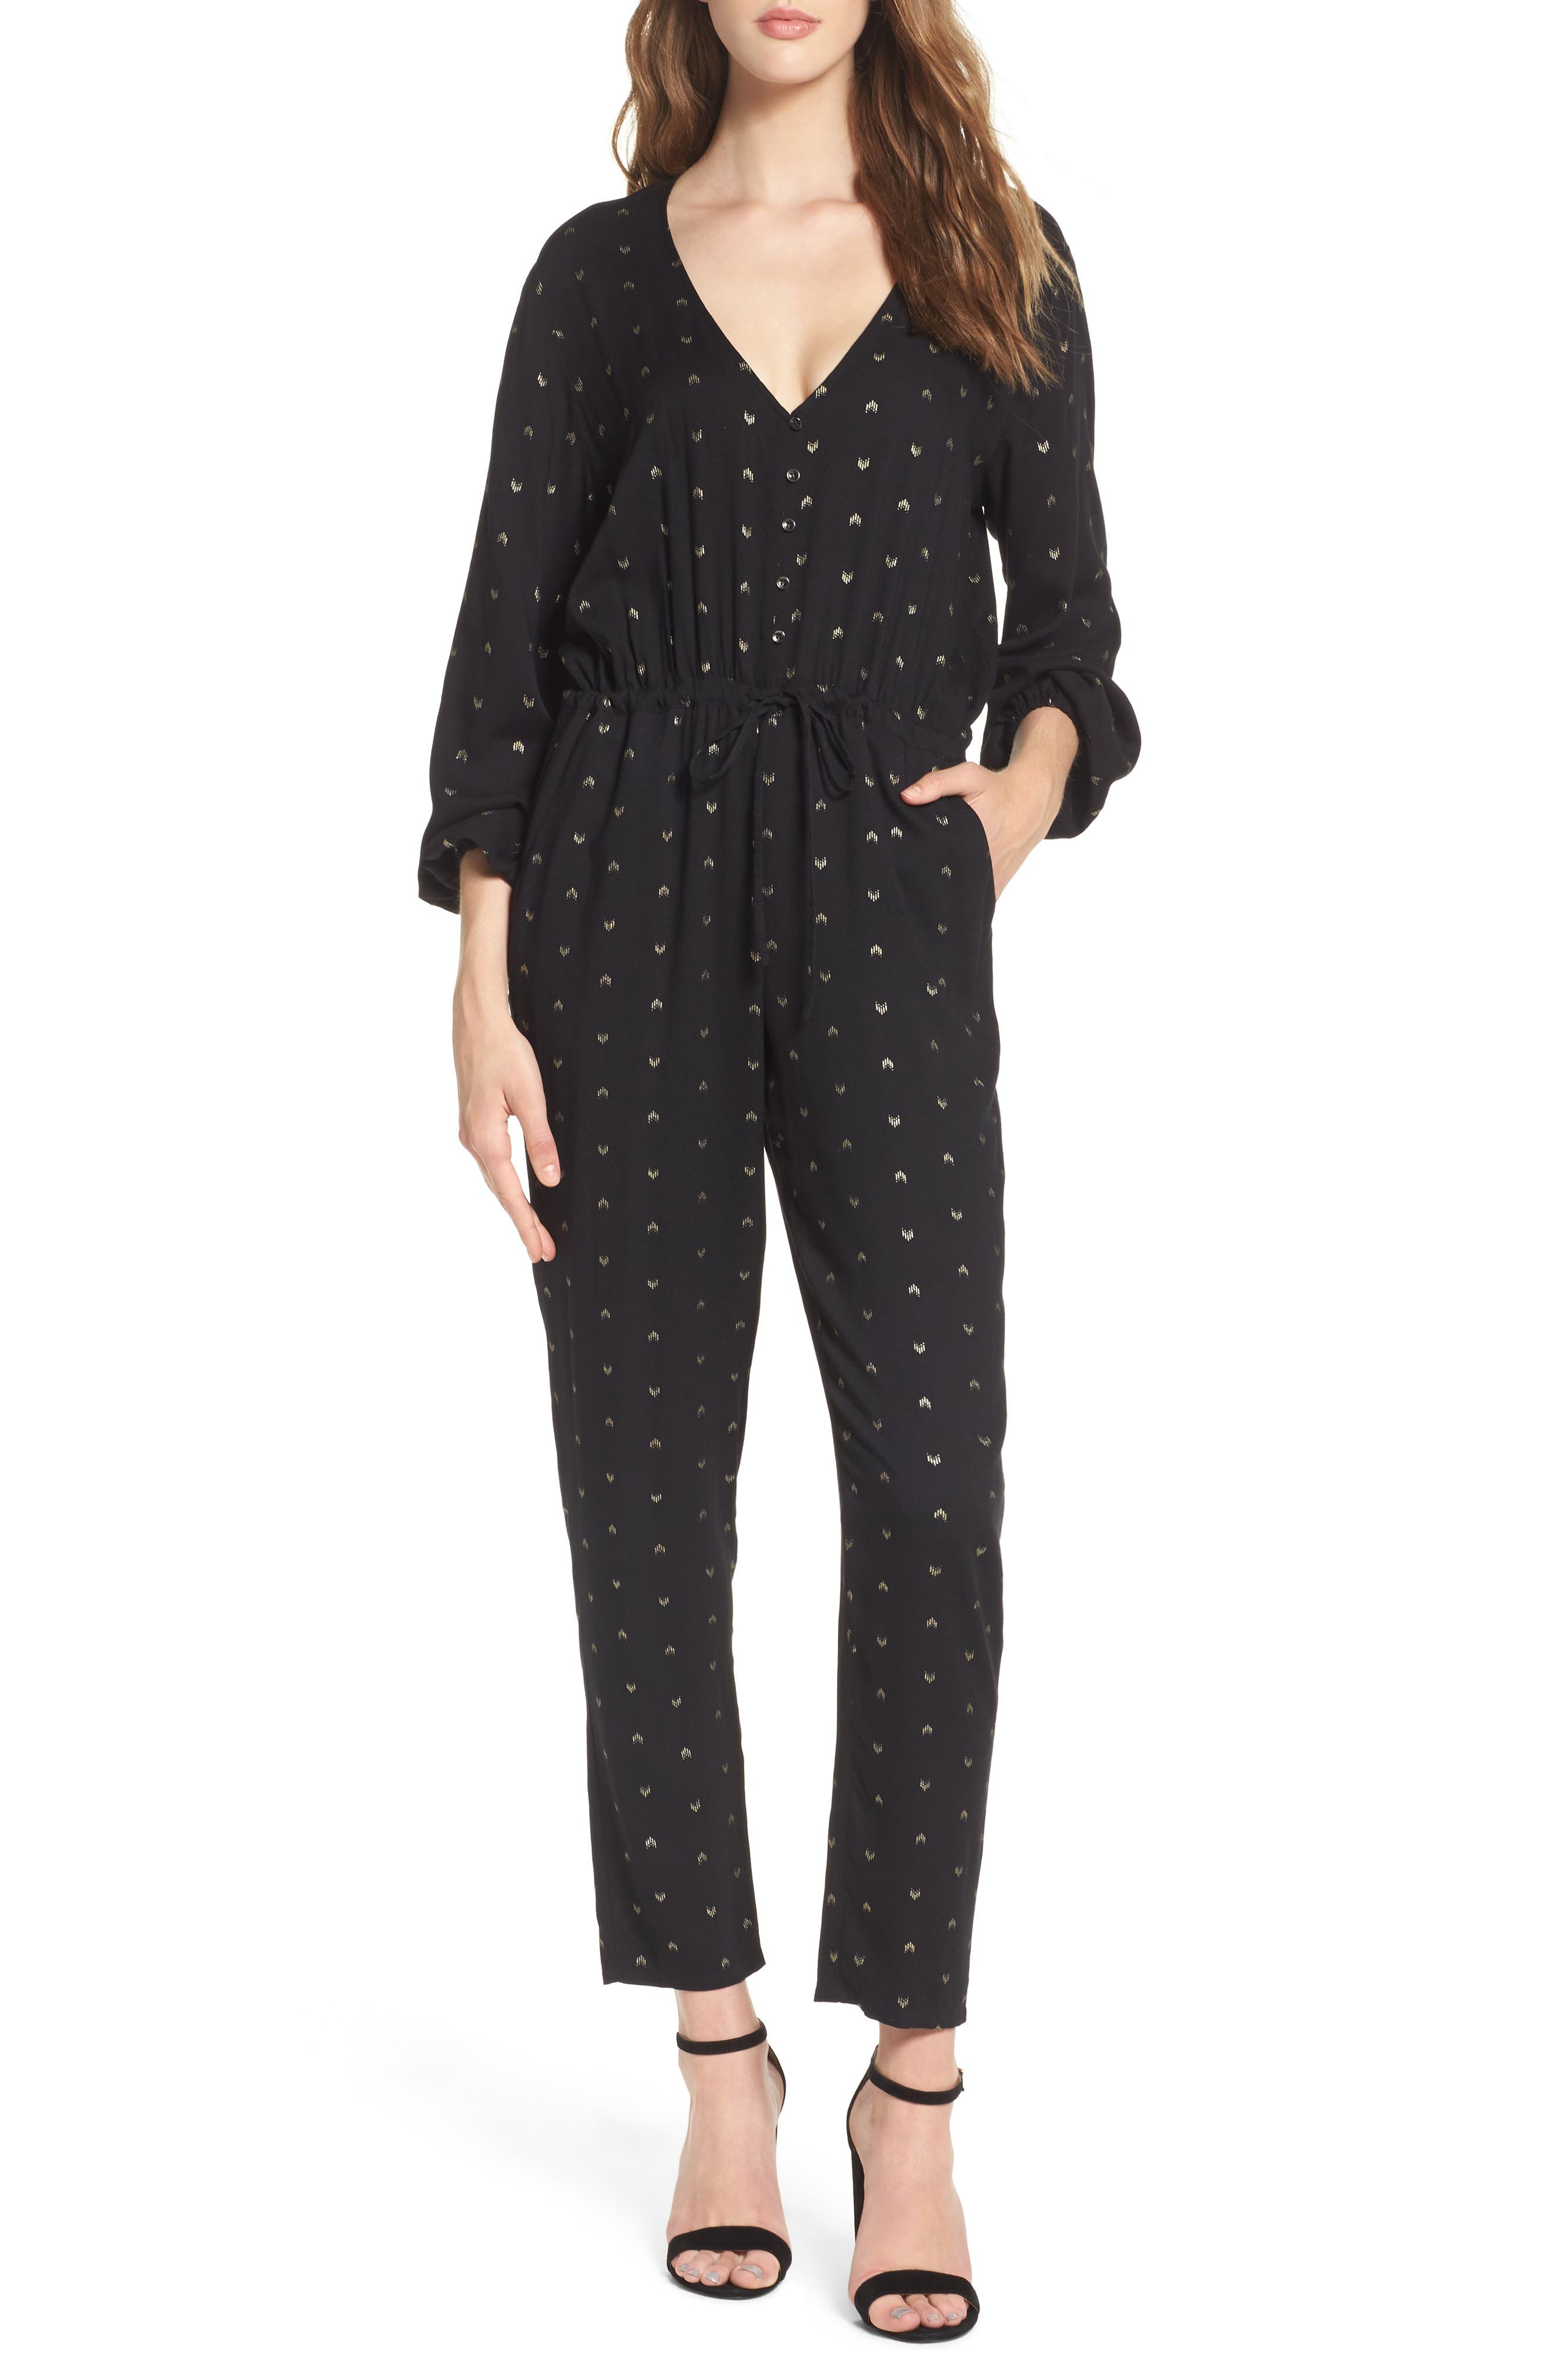 Knot Sisters Hillary Jumpsuit